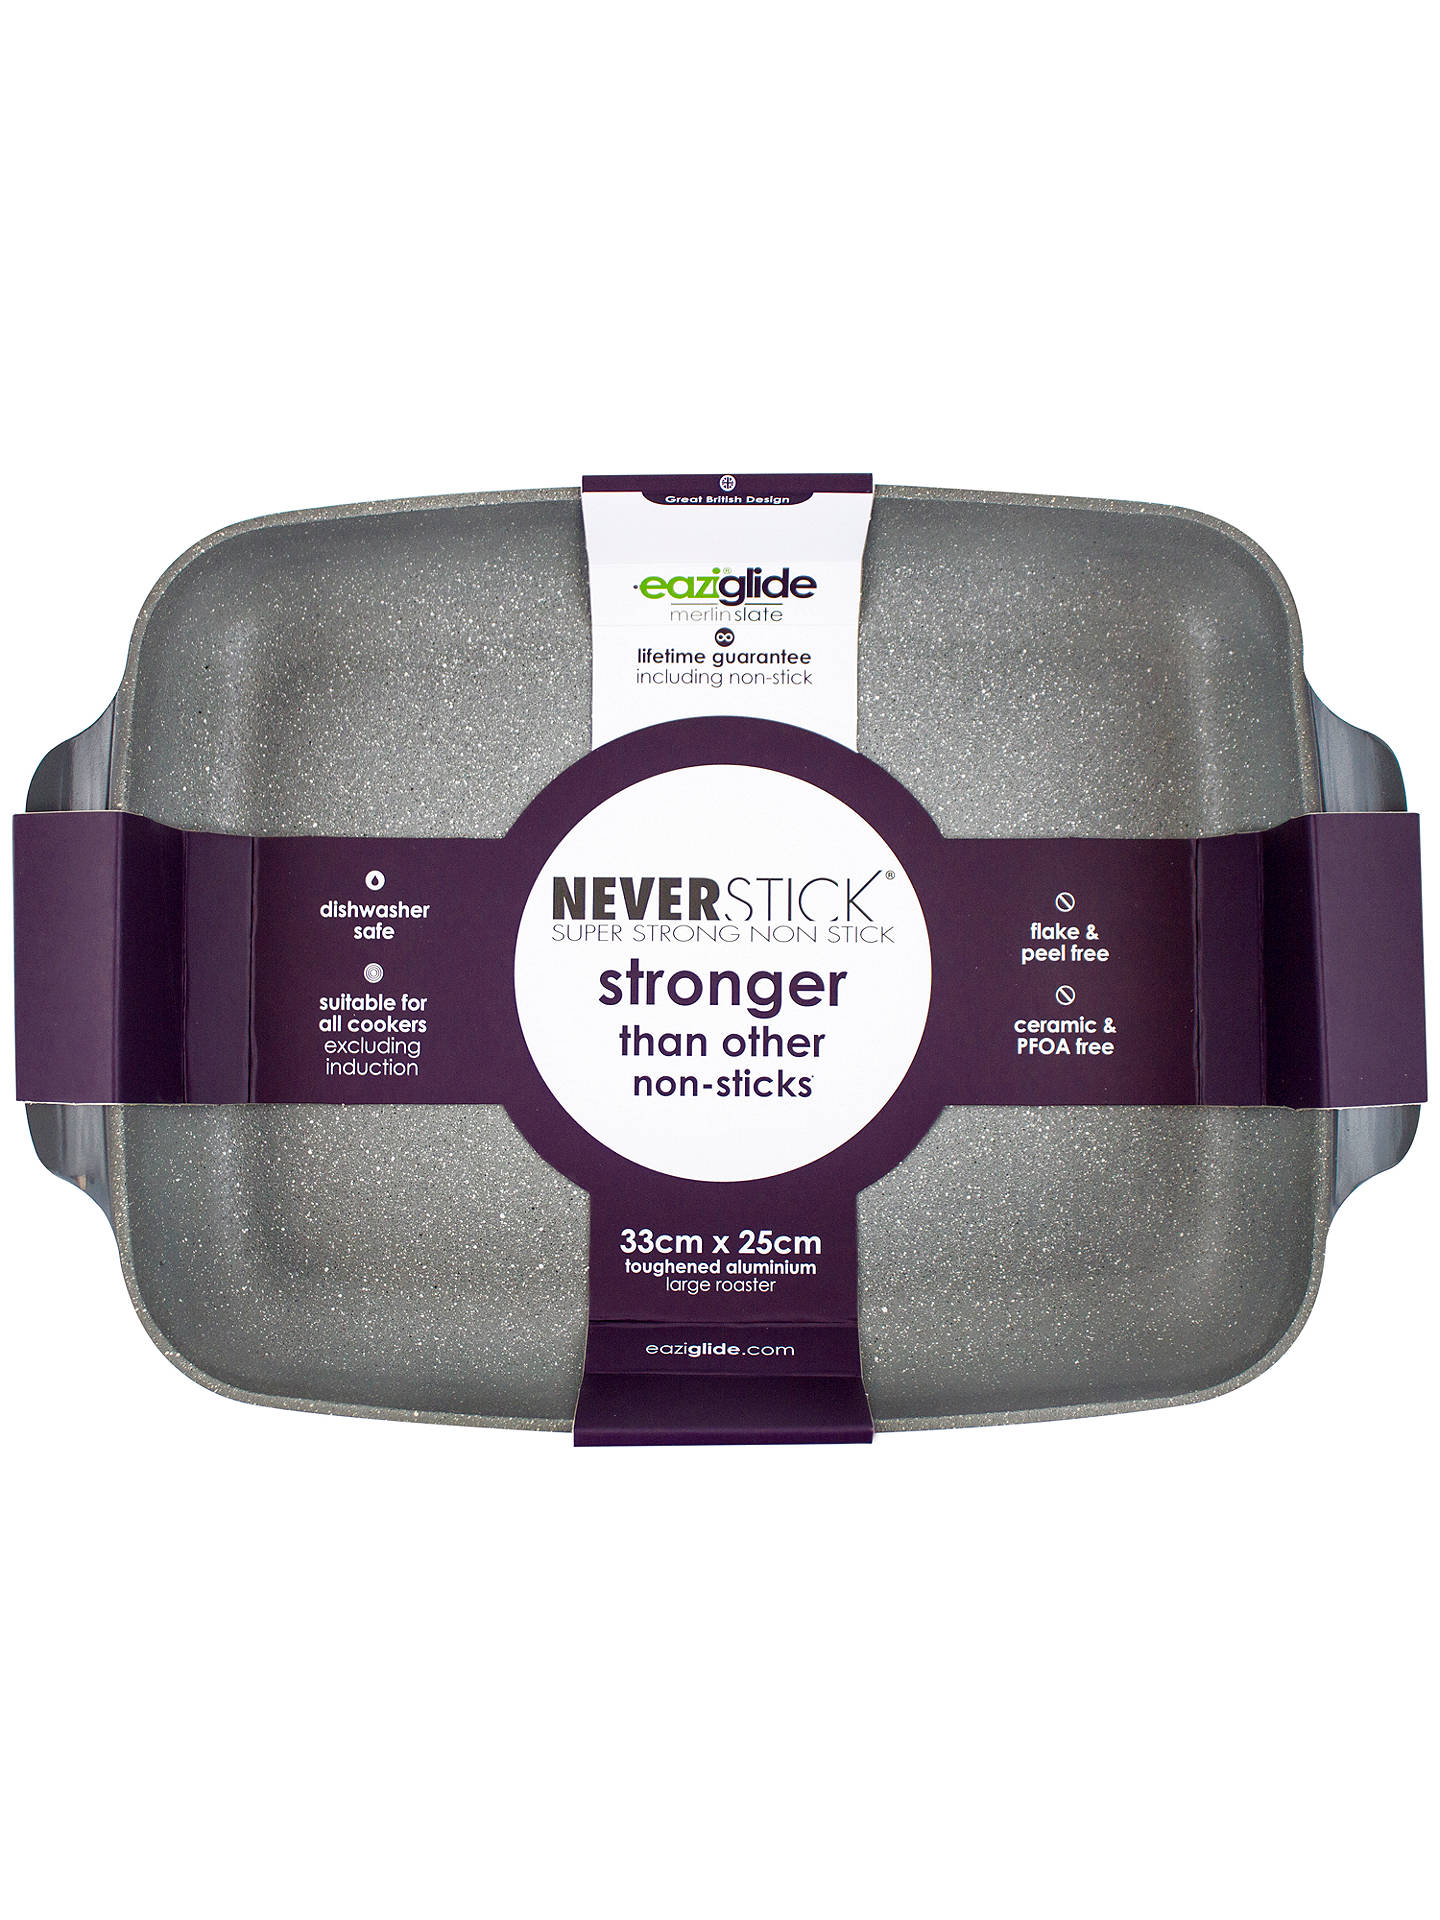 Buy Eaziglide Neverstick Non-Stick Roaster, L37cm Online at johnlewis.com